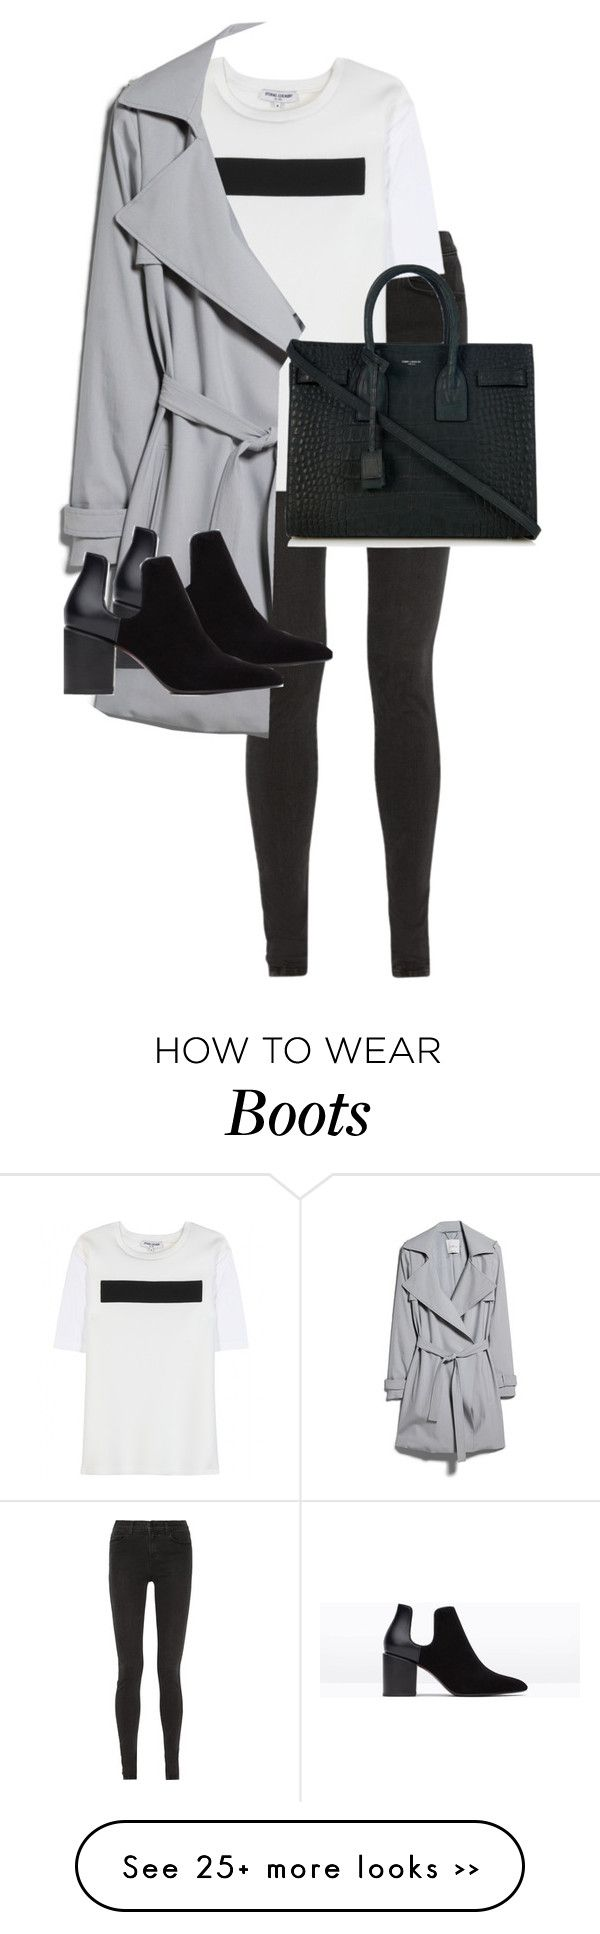 """Untitled #9221"" by alexsrogers on Polyvore"